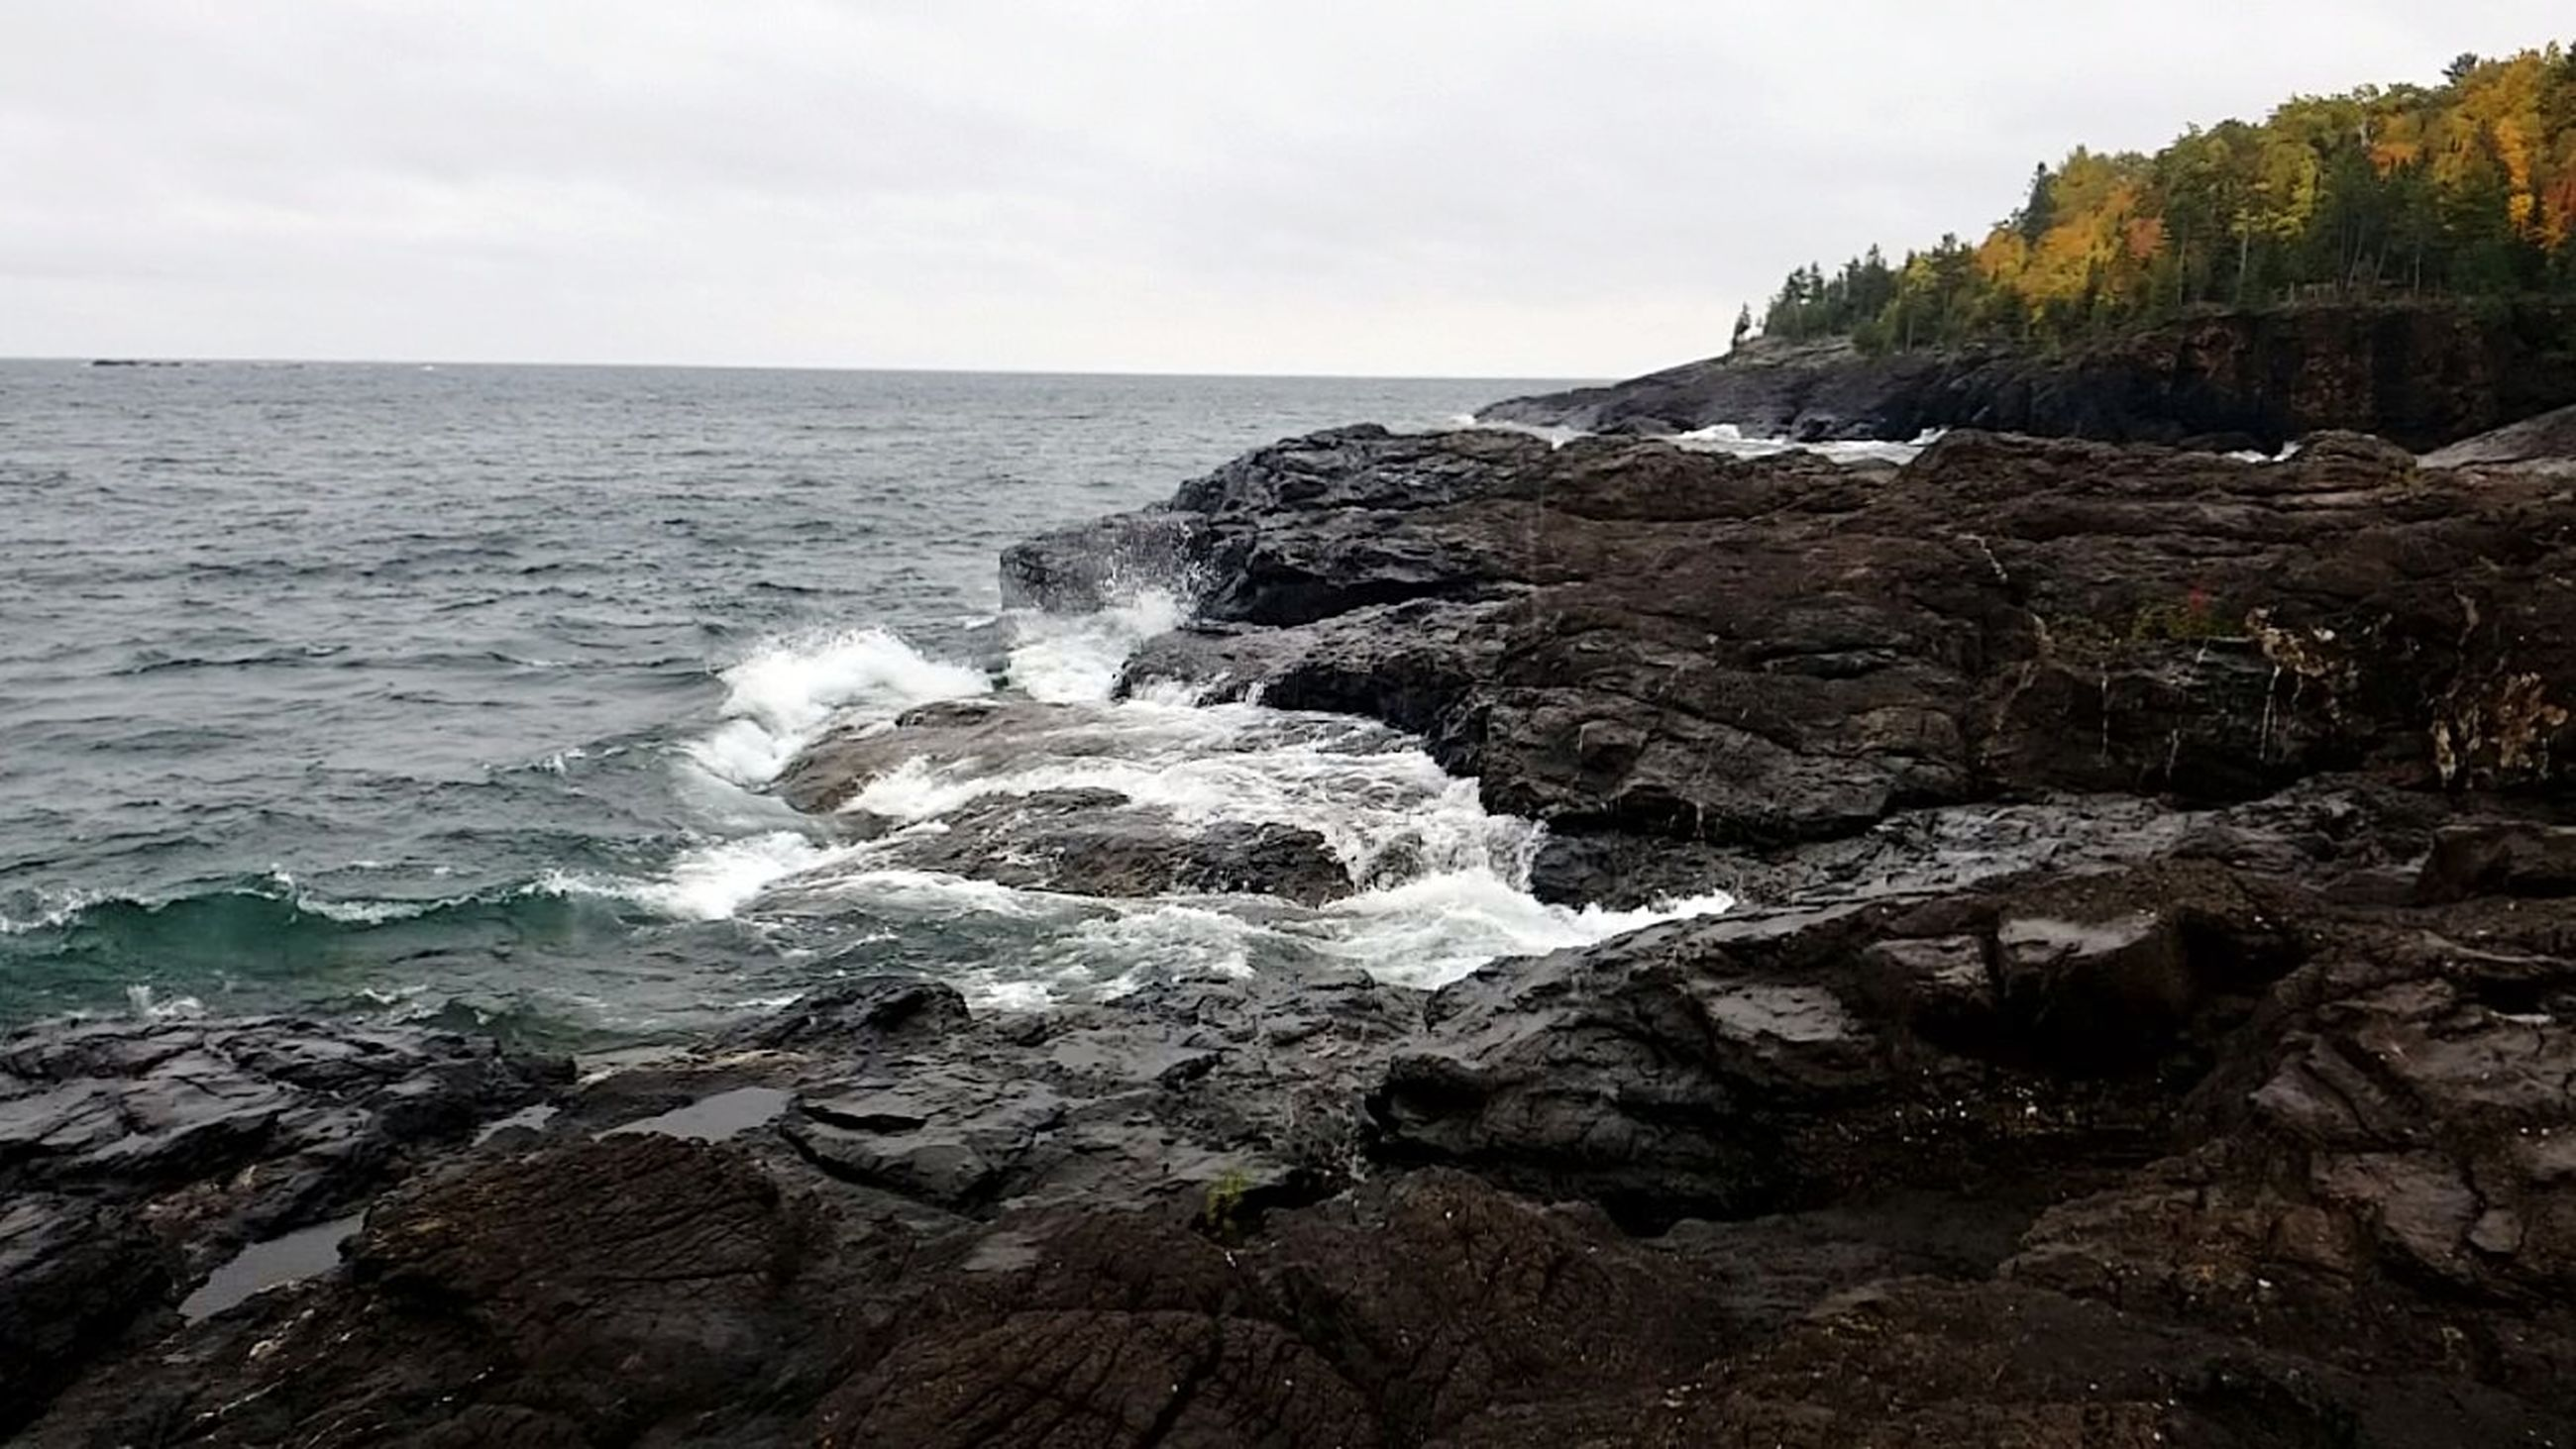 sea, water, sky, rock, beauty in nature, rock - object, scenics - nature, horizon, solid, horizon over water, motion, land, nature, rock formation, no people, wave, beach, day, tranquil scene, outdoors, power in nature, rocky coastline, breaking, hitting